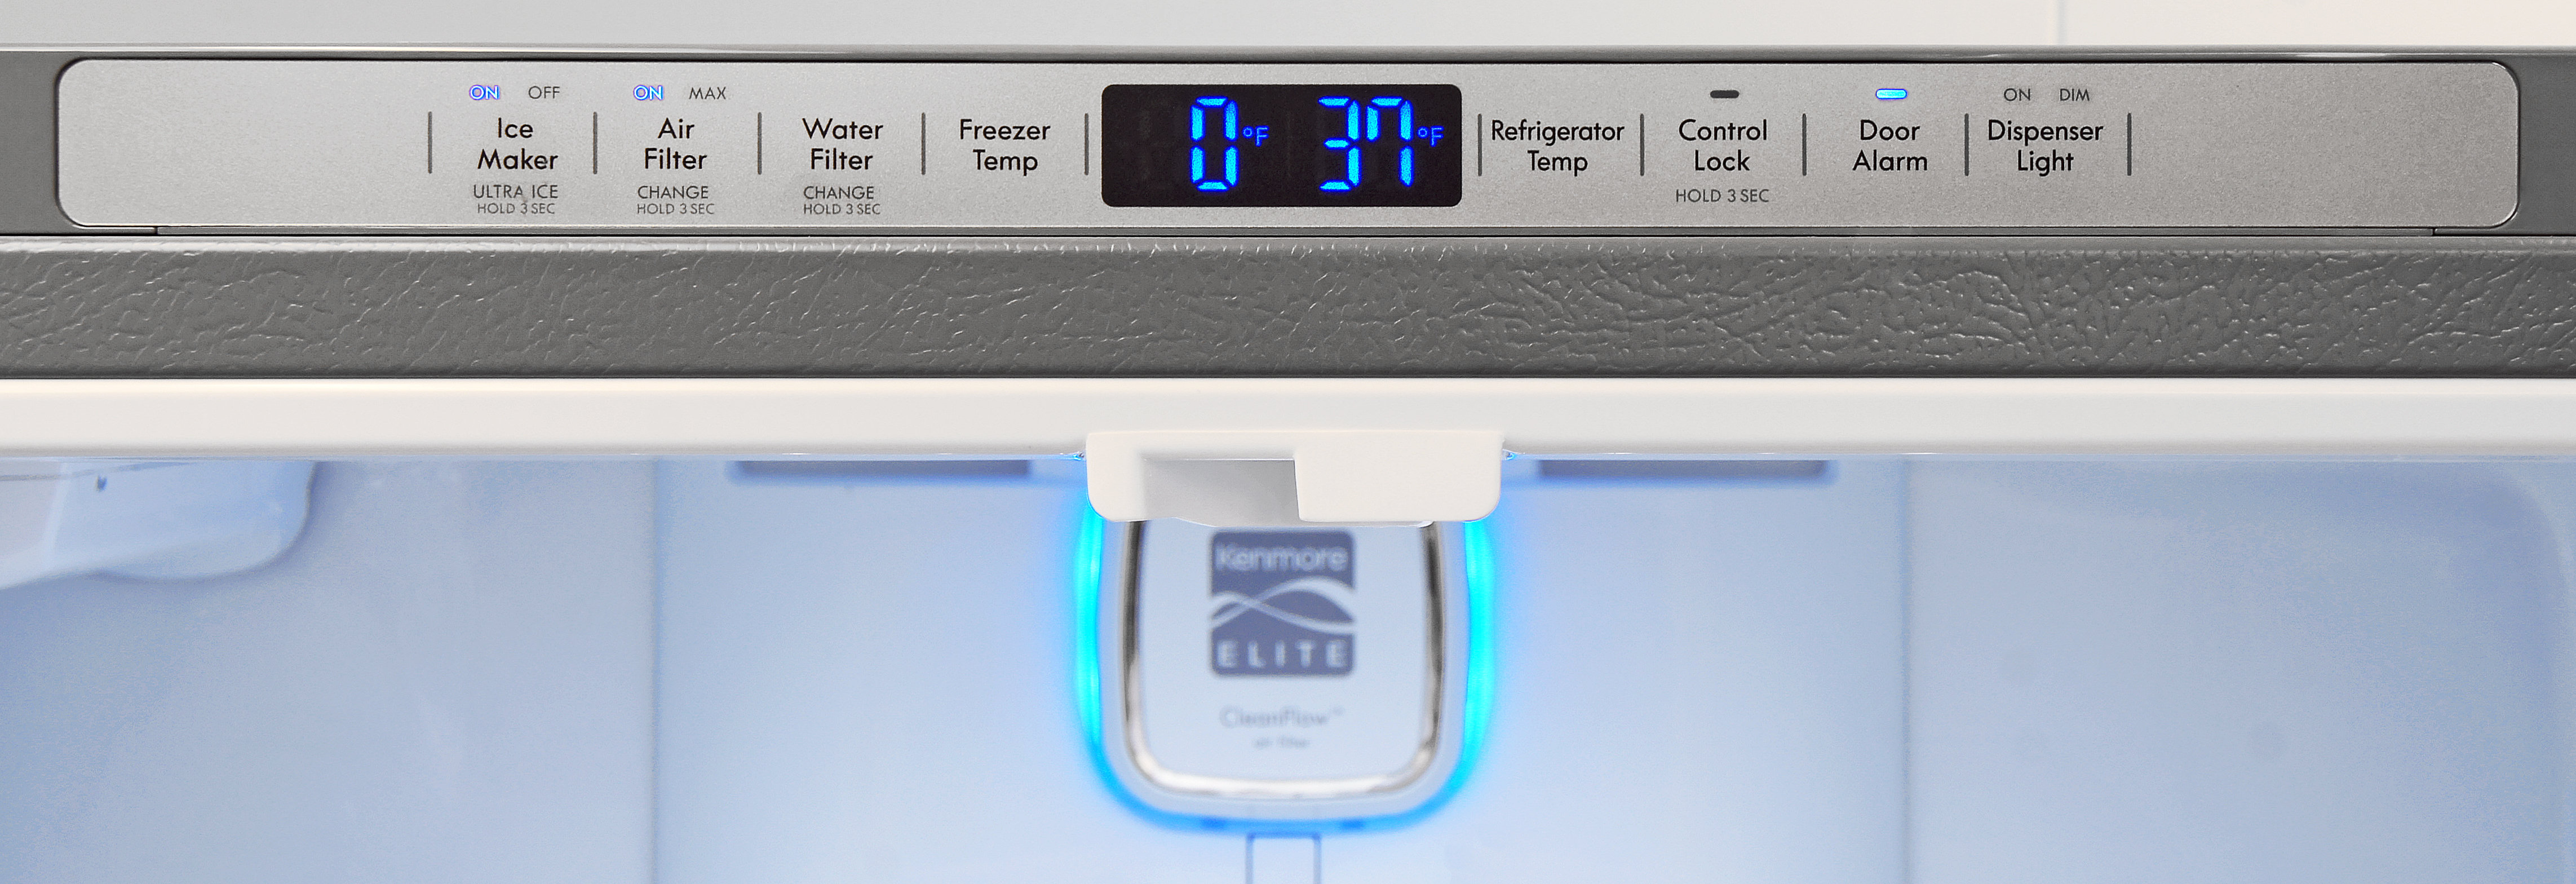 Controls for the Kenmore Elite 72483 are kept along the top edge of the main fridge compartment's frame.